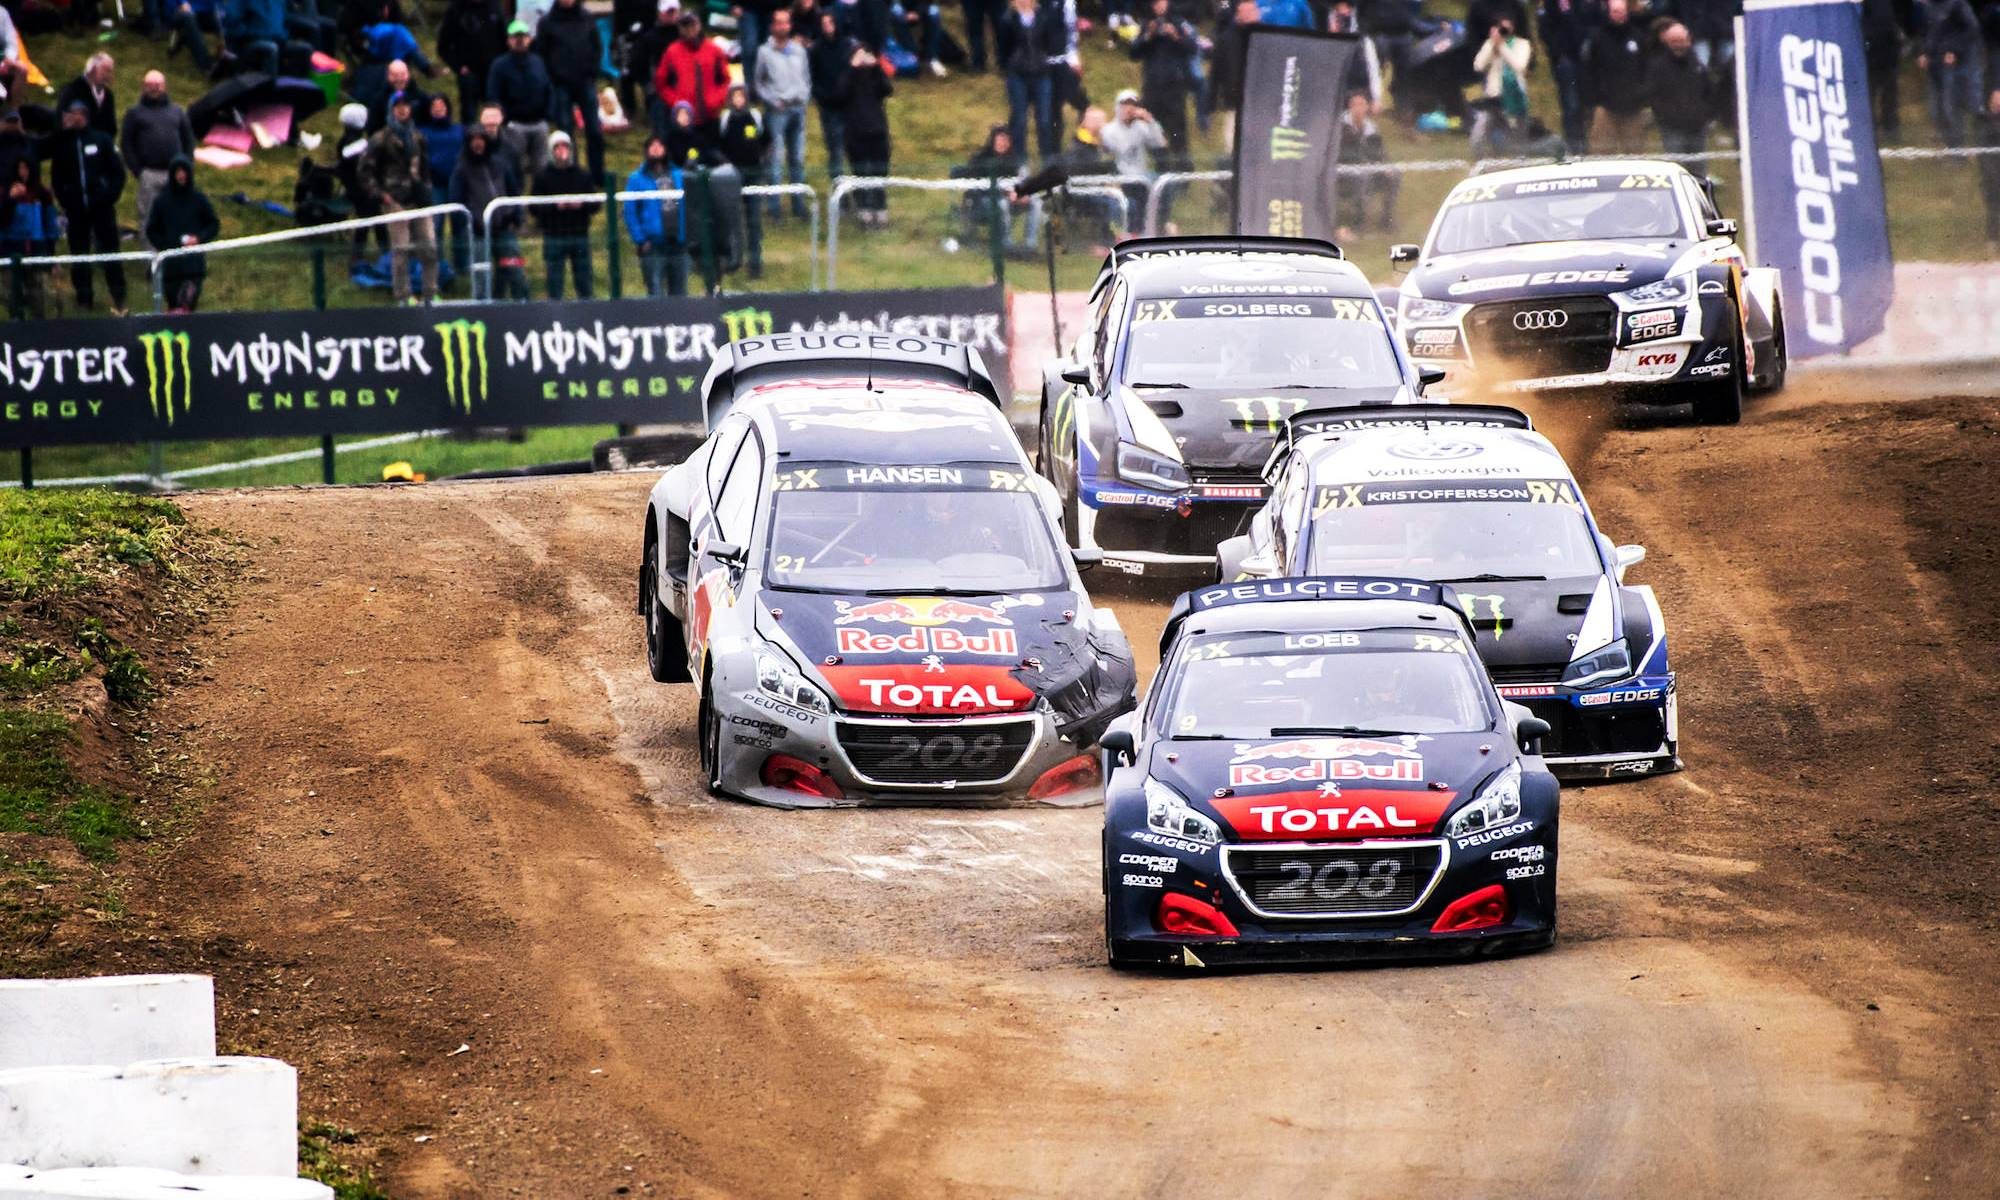 Loeb drove a flawless race to claim victory in the third round of the FIA World Rallycross championship